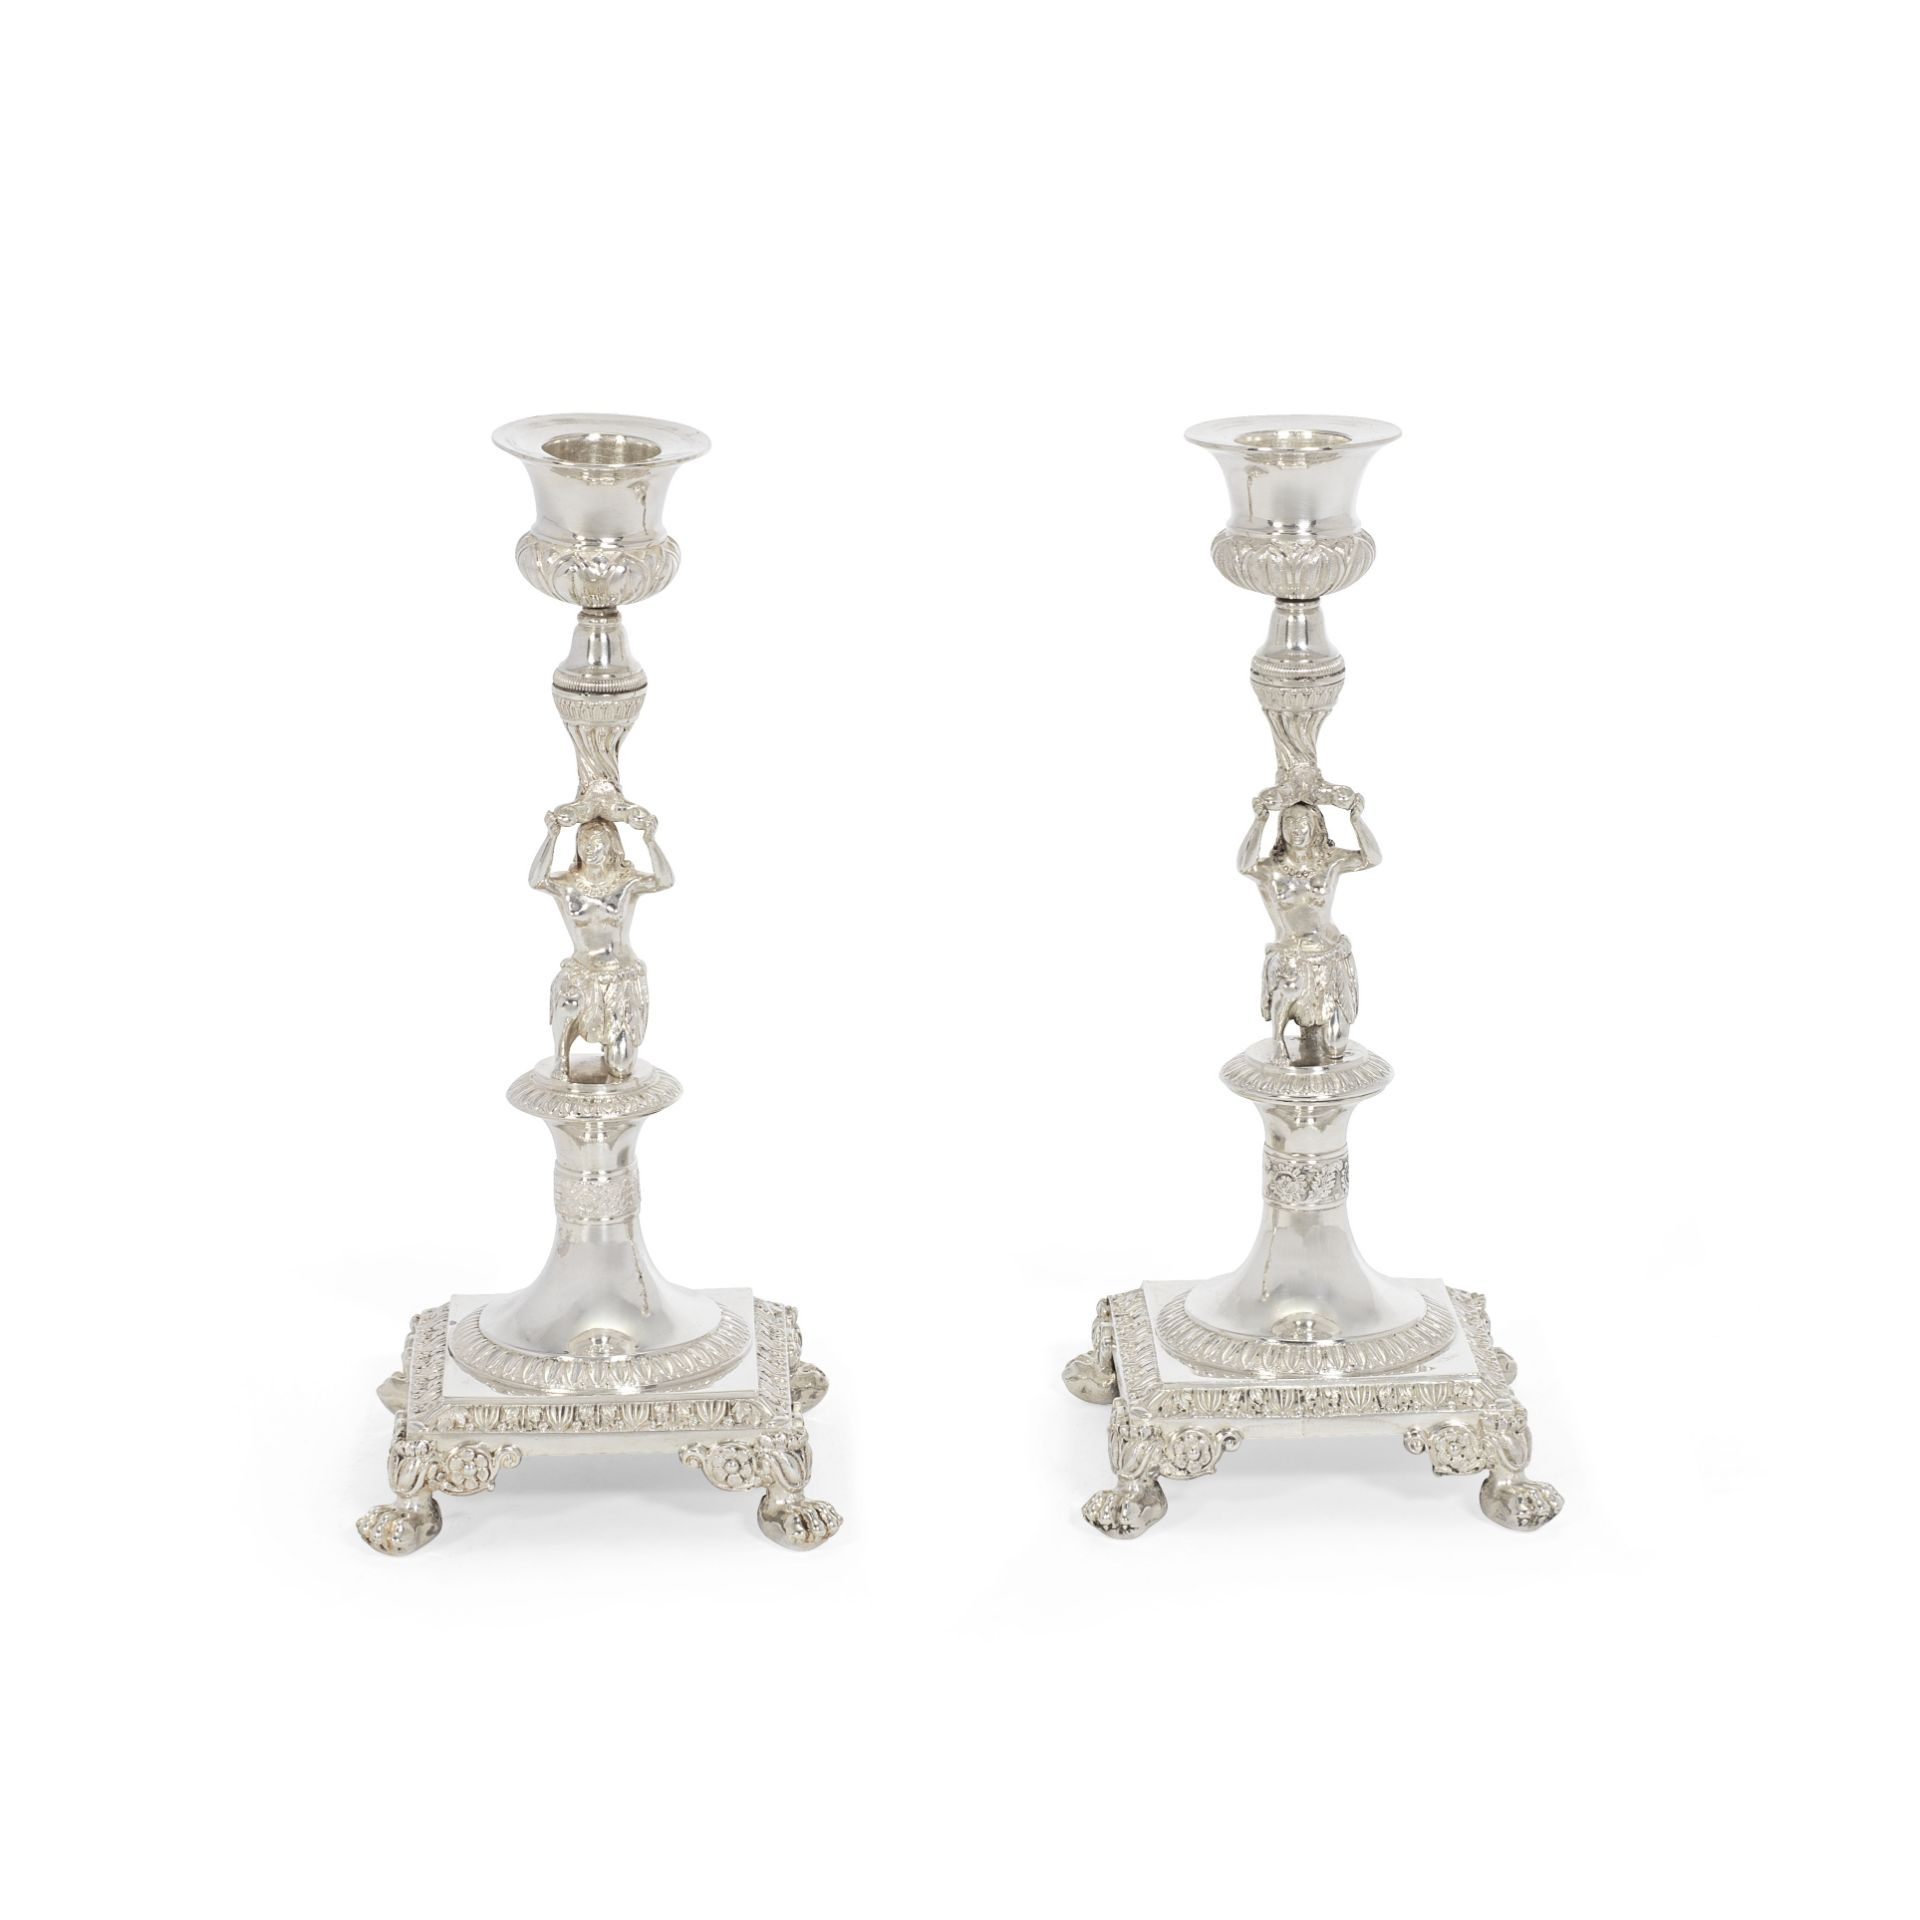 A pair of silver figural candlesticks maker's mark rubbed, with French first standard mark for Pa...